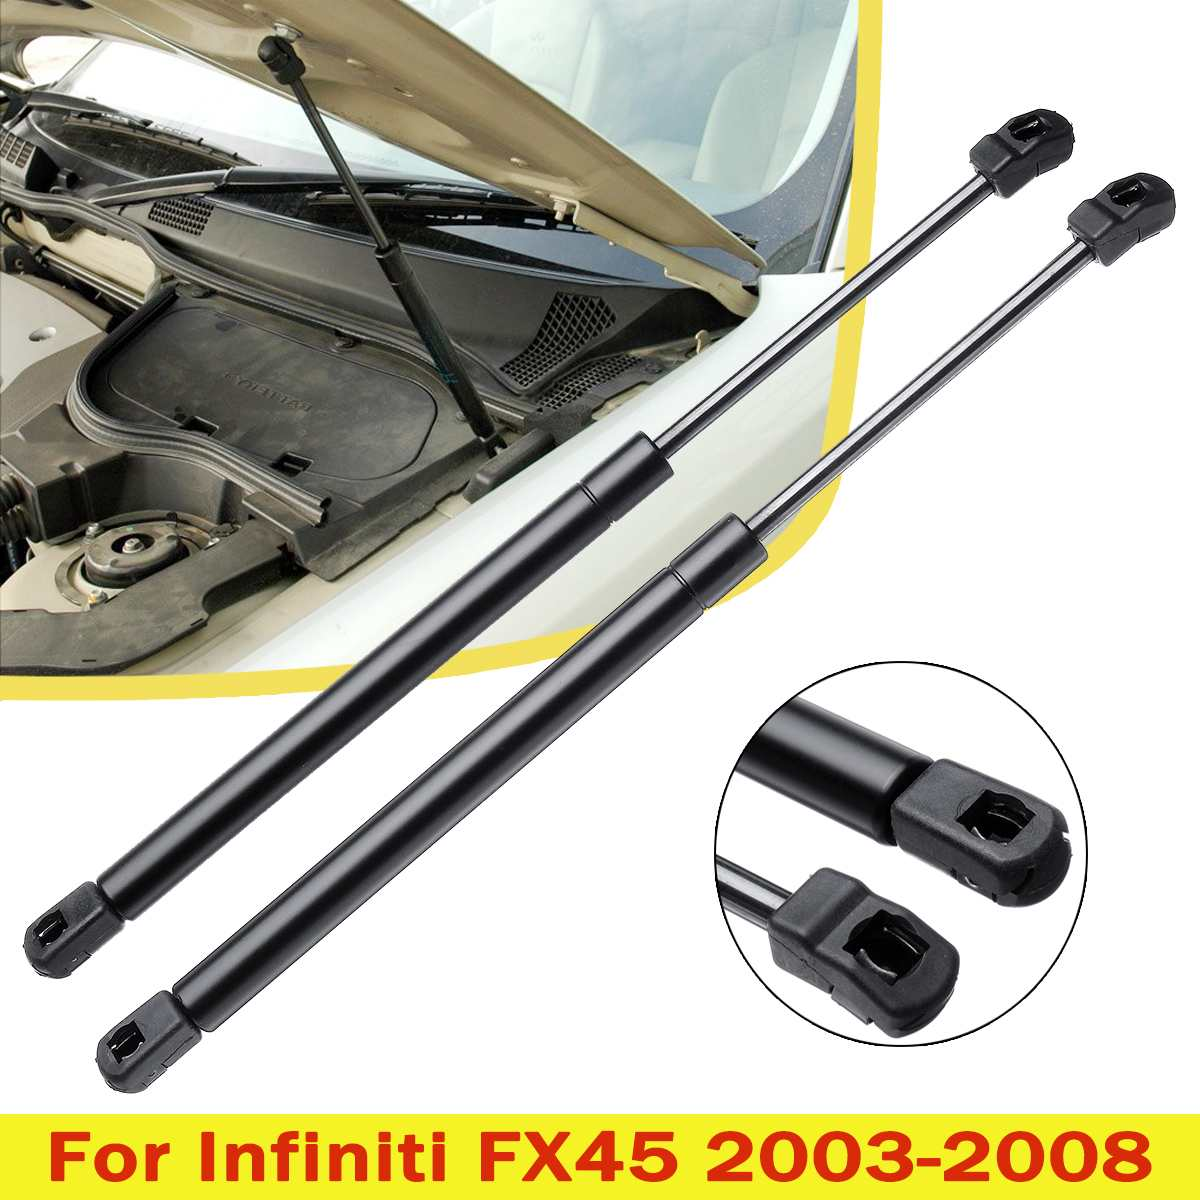 2X Front Engine Cover Bonnet Hood Shock Lift Struts Bar Support Arm Gas Hydraulic SG371003 For Infiniti FX35 FX45 2003 - 2008